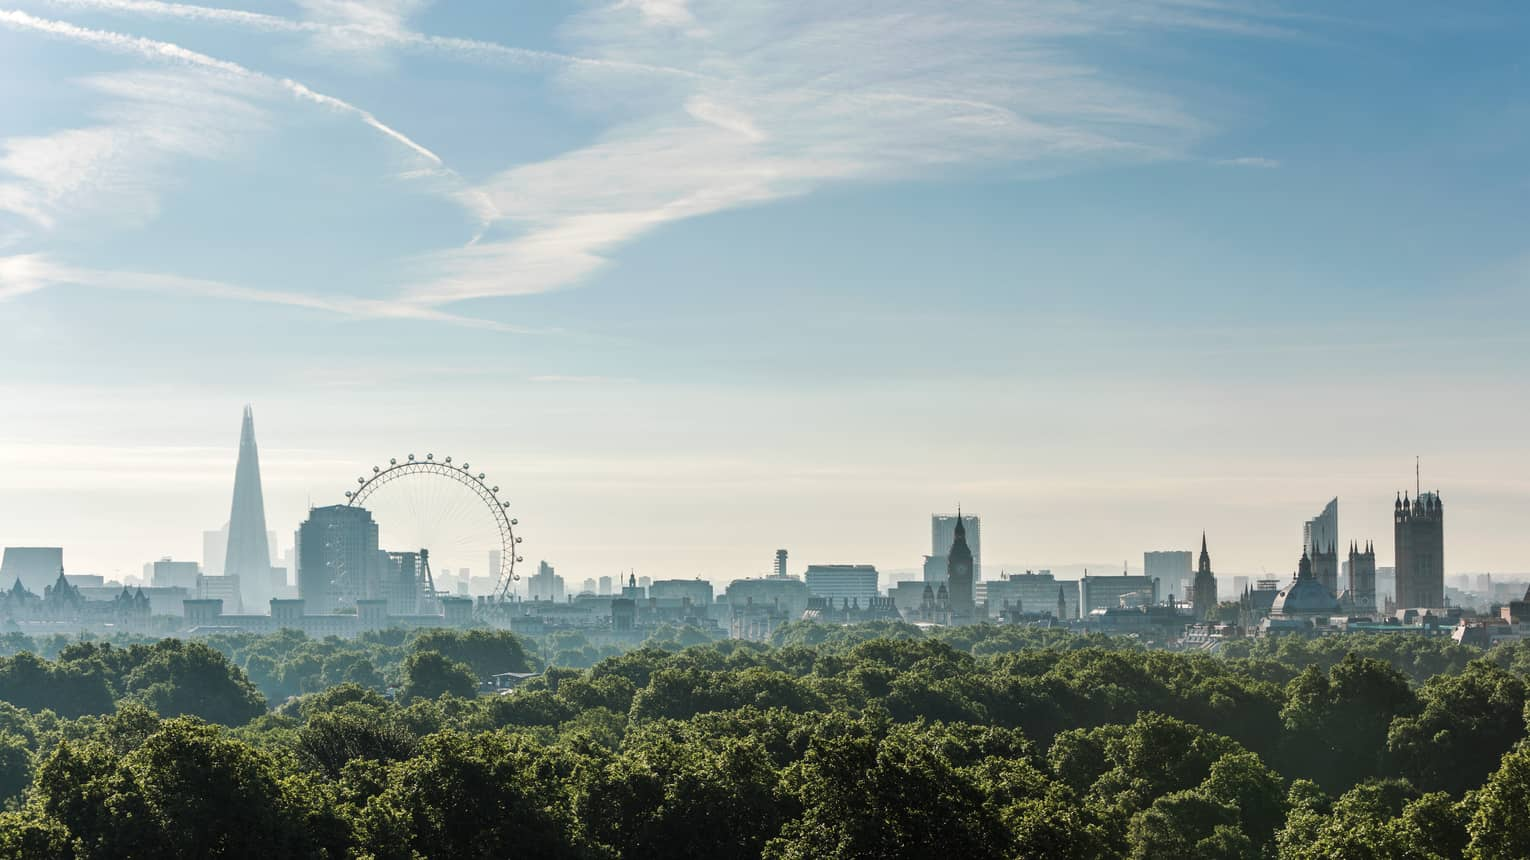 London city skyline, ferris wheel on horizon over canopy of green trees